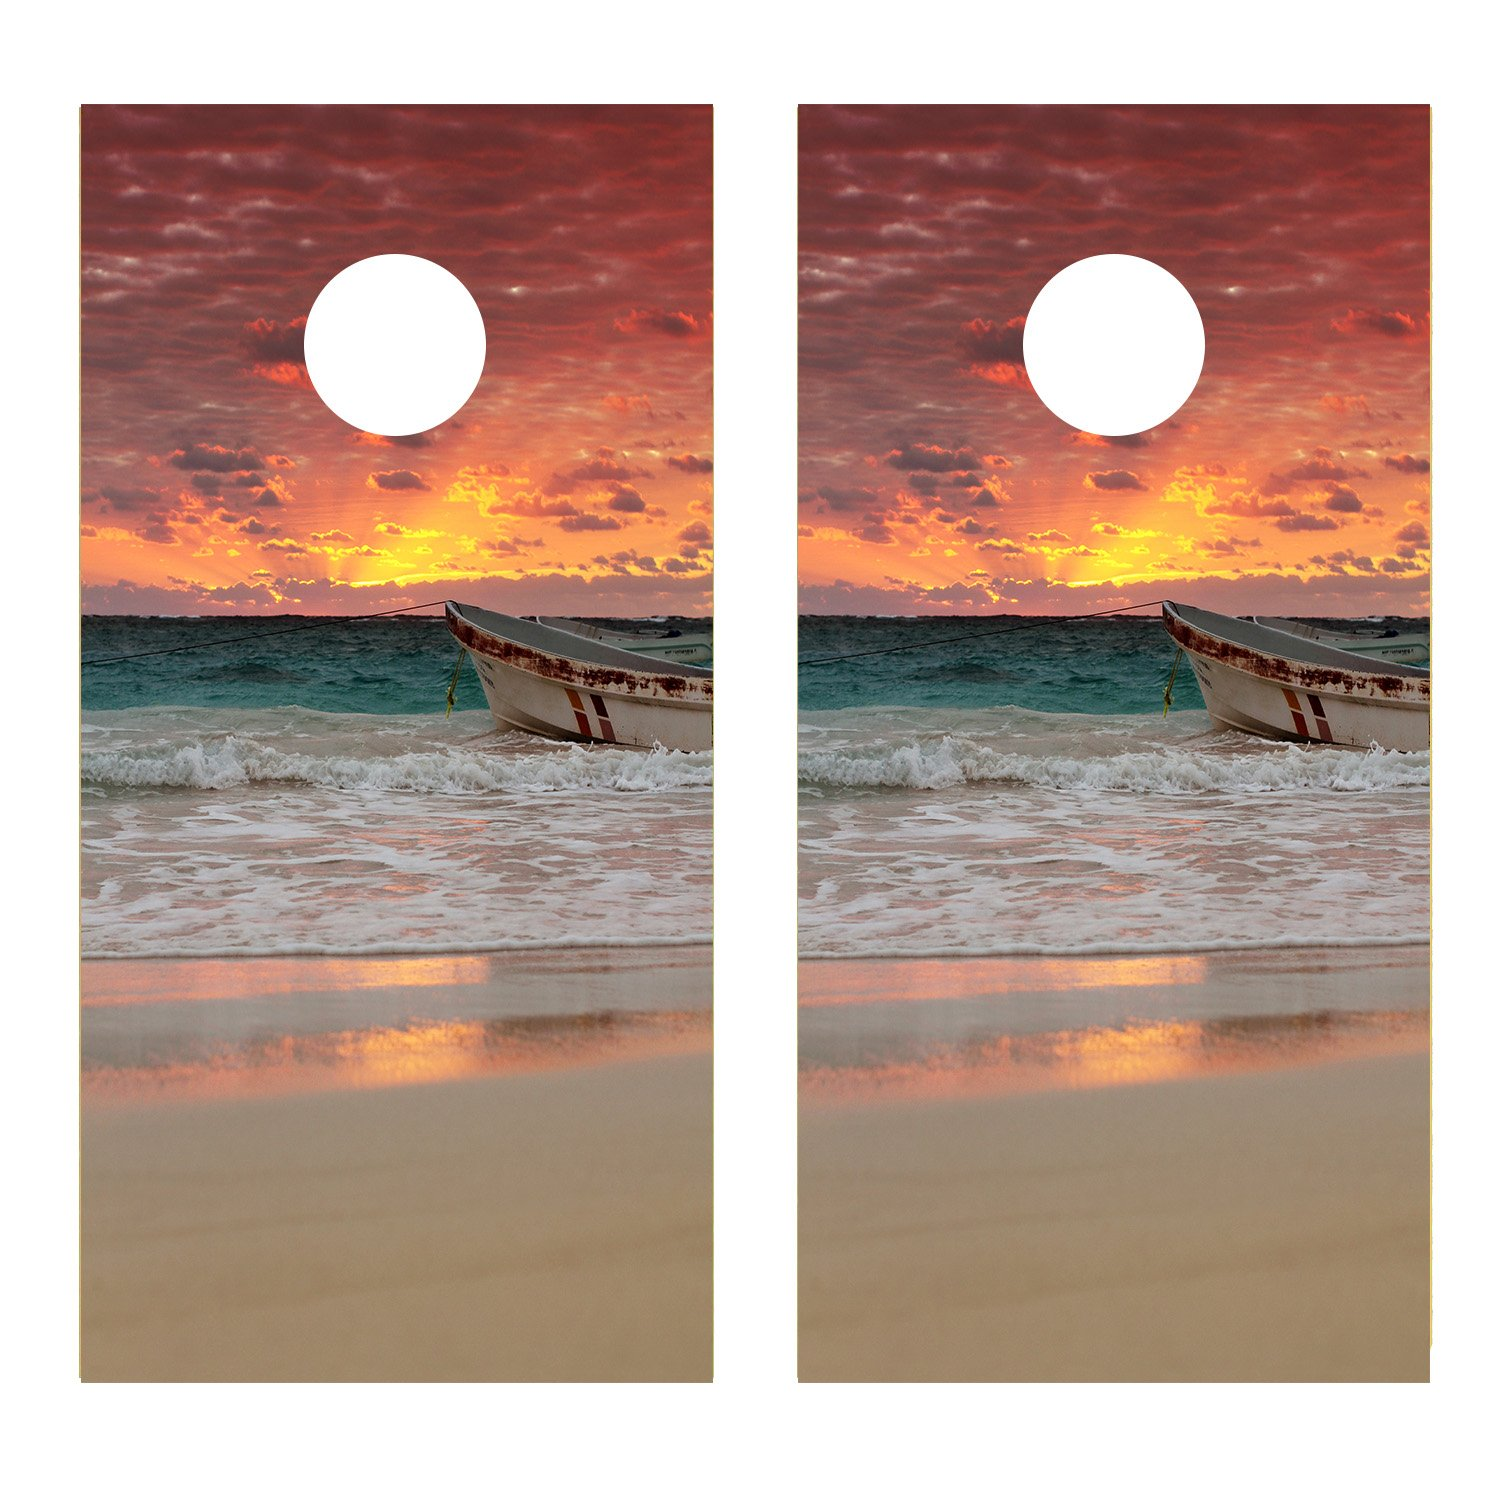 Sunset on the Ocean CORNHOLE DECAL WRAP SET Decals Board Boards Vinyl Sticker Stickers Bean Bag Game Wraps Vinyl Graphic Image Corn Hole (Laminated)